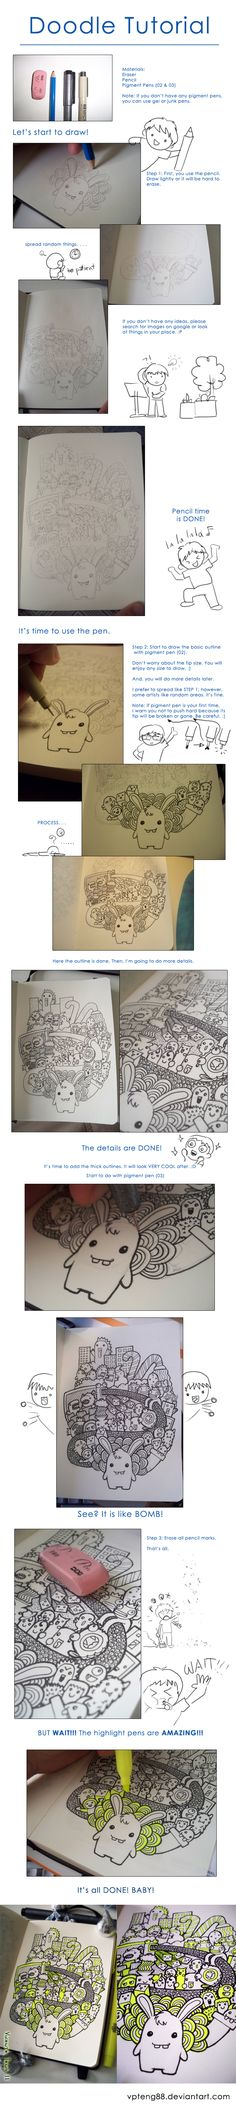 Doodle Tutorial by vicenteteng.deviantart.com on @deviantART | nice tutorial!